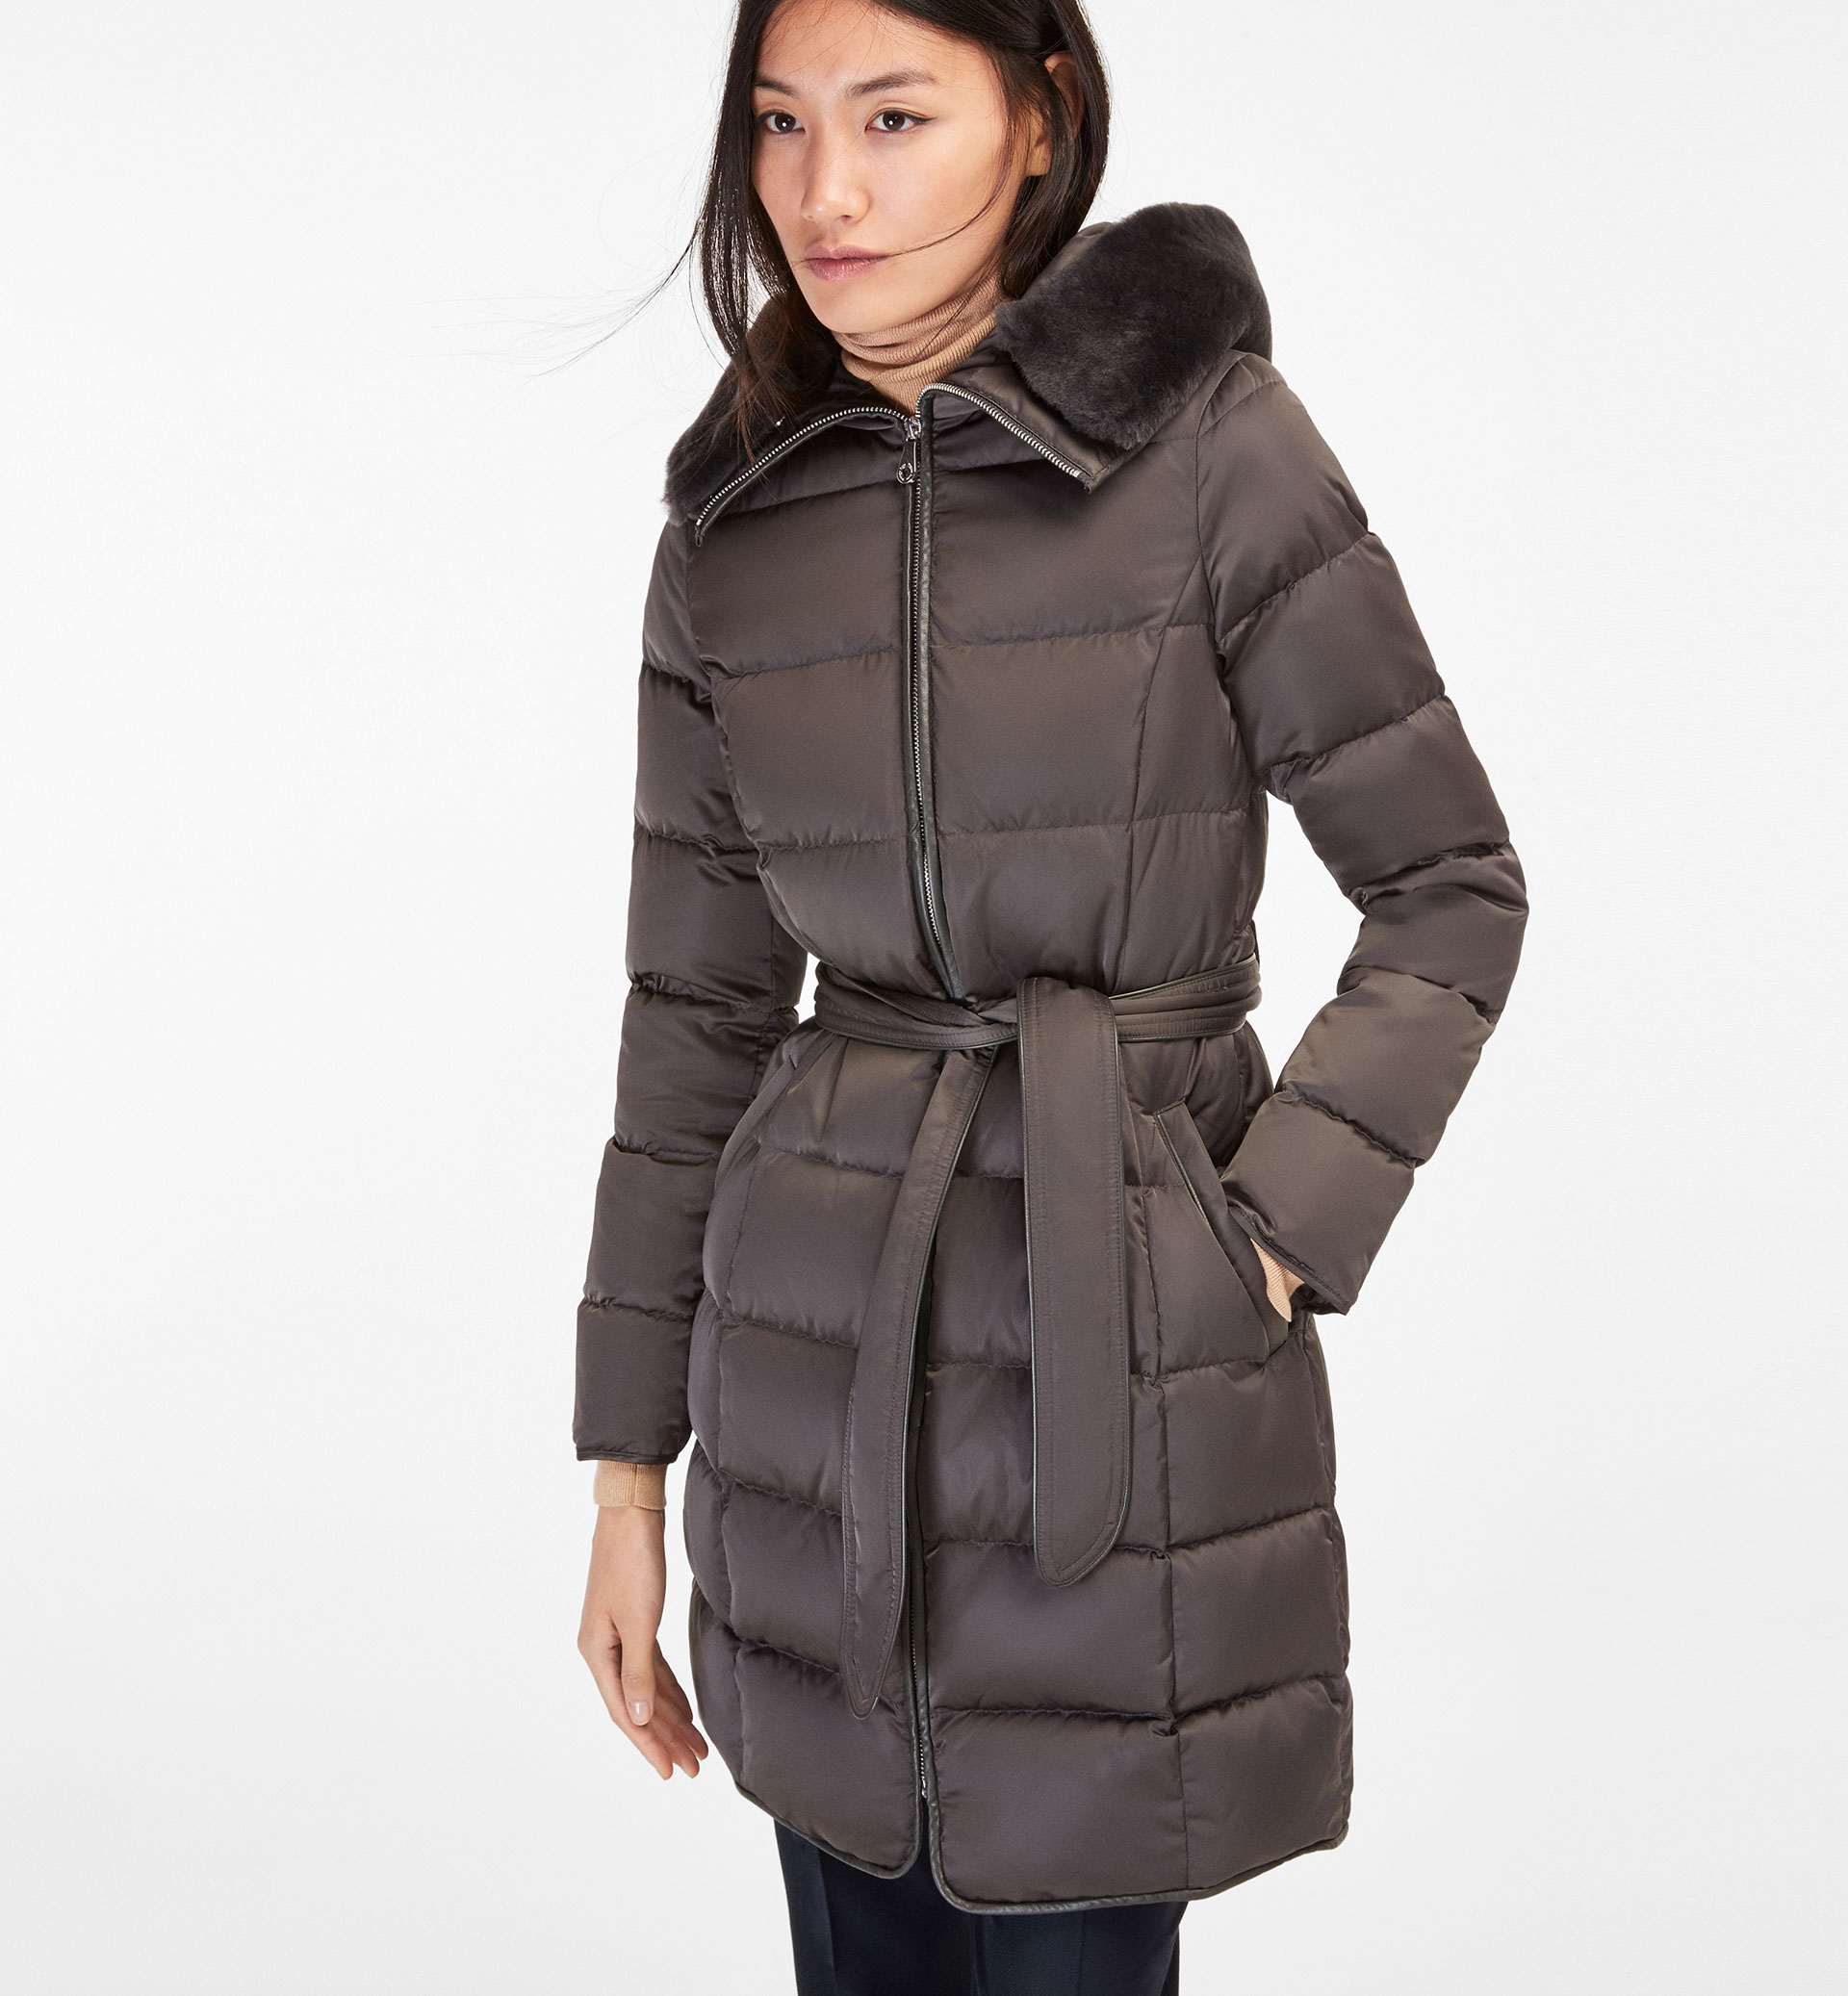 GREY QUILTED COAT WITH FUR DETAIL